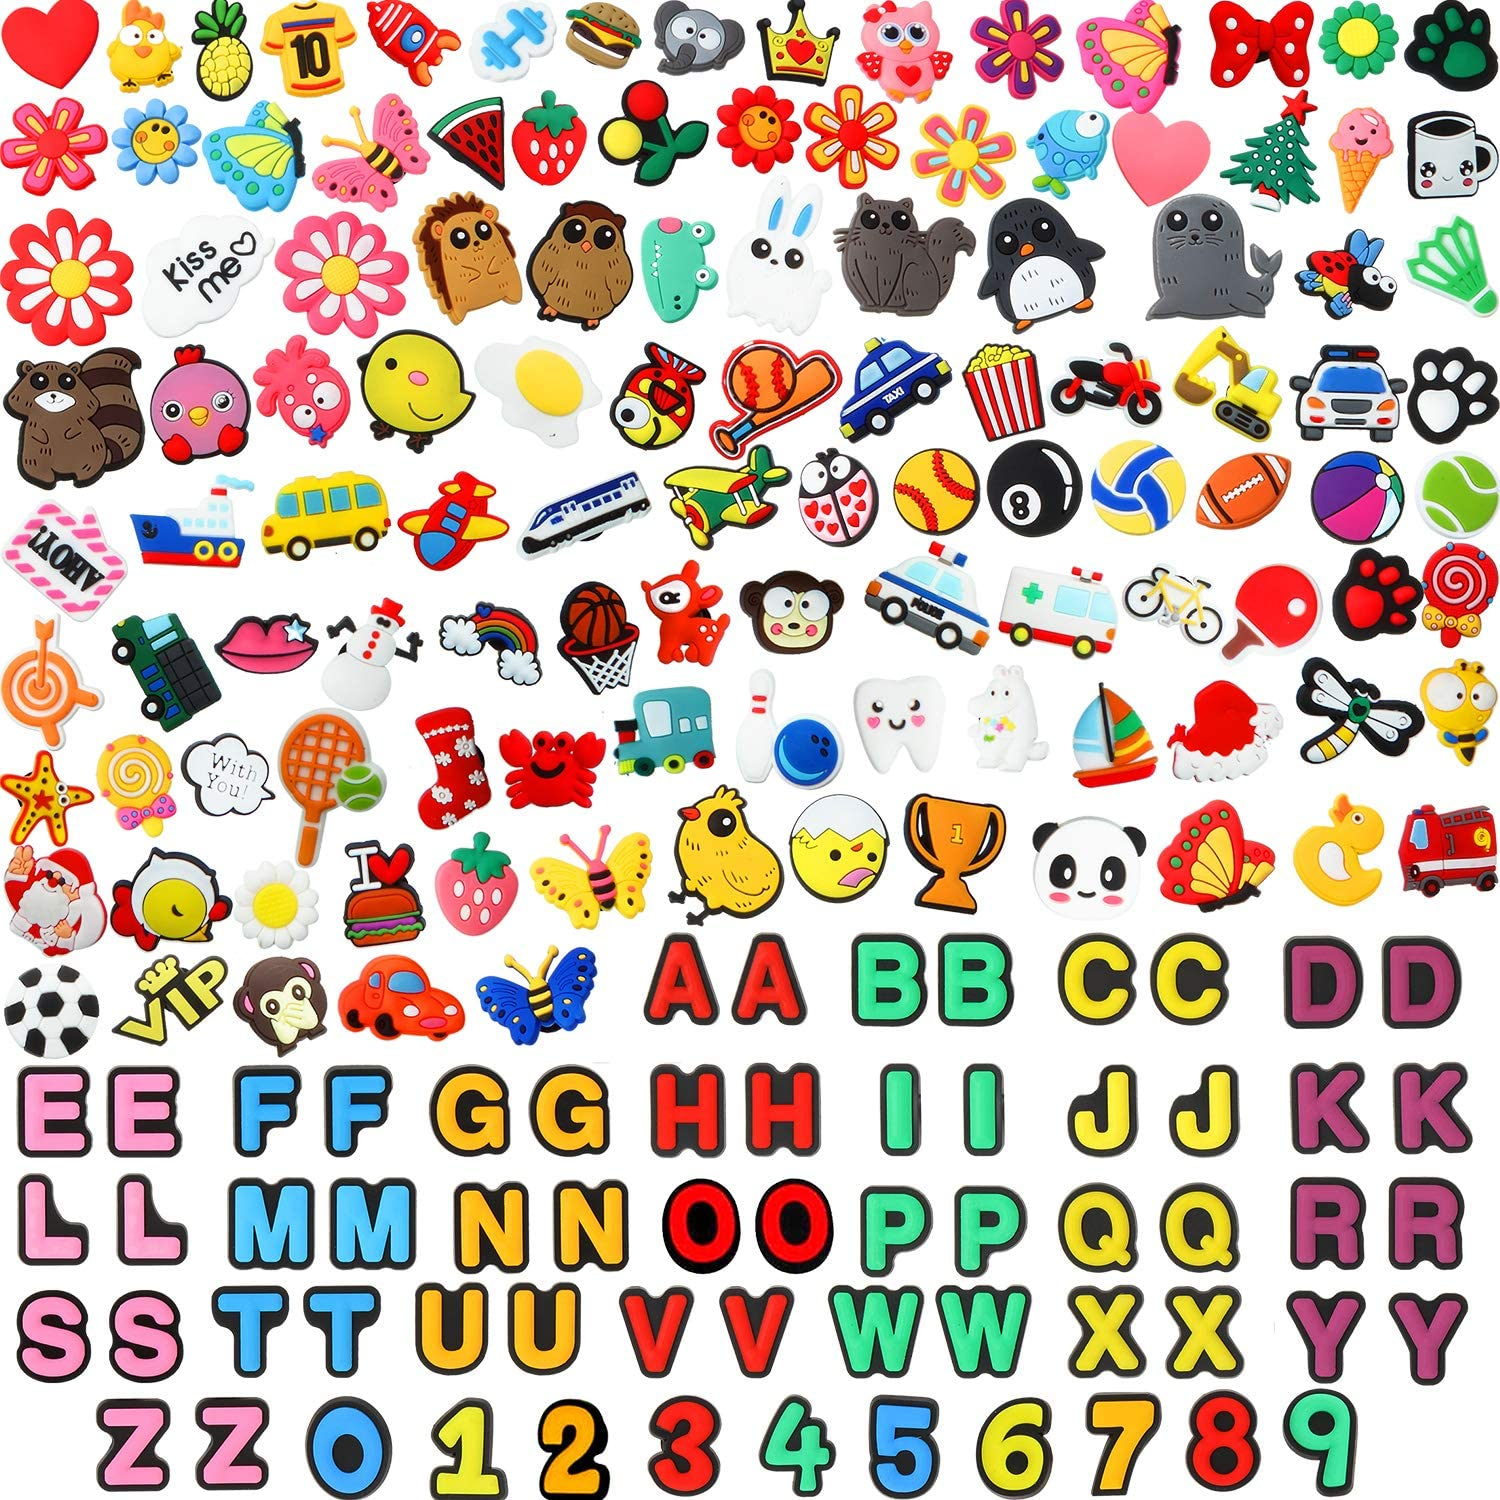 WILLBOND 180 Pieces PVC Shoes Charms Fits Compatible with Clog Shoes for Kids Presents Party Birthday DIY Projects Supplies